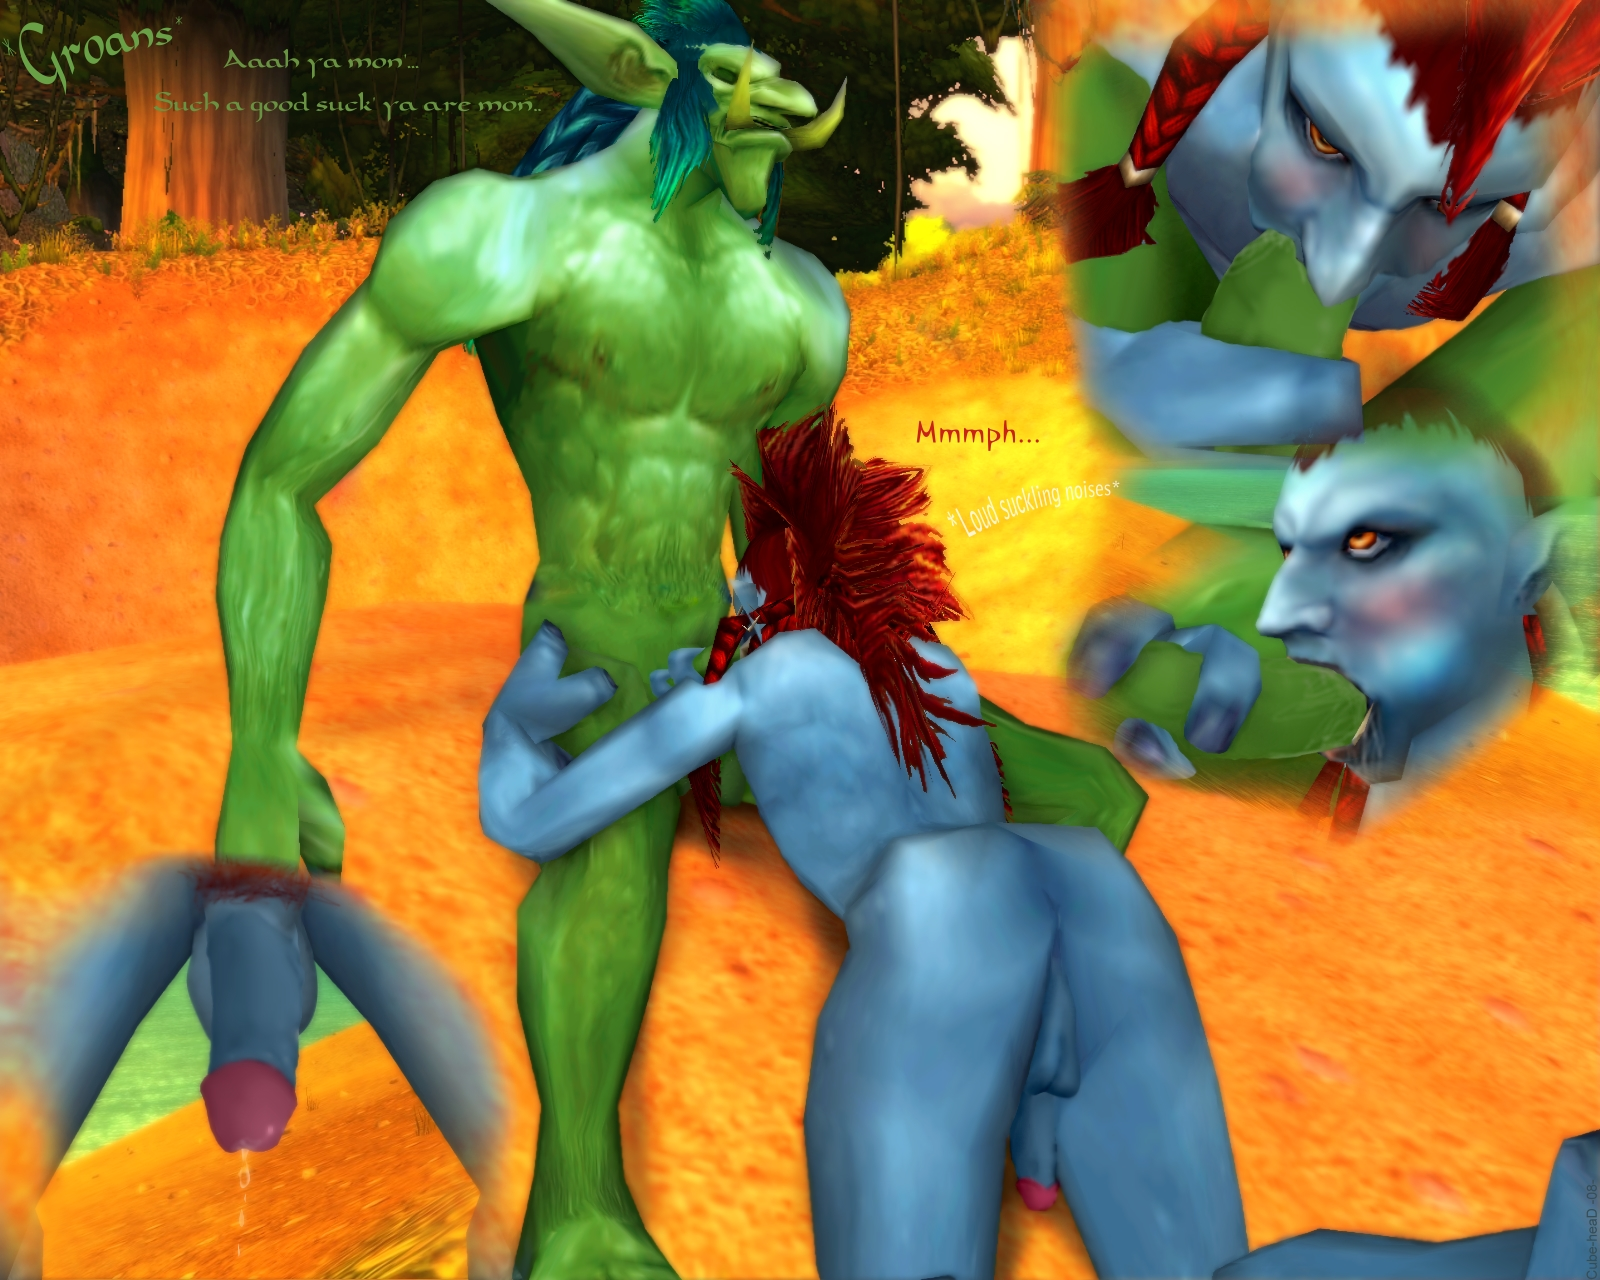 Warcraft jizz art sex comics